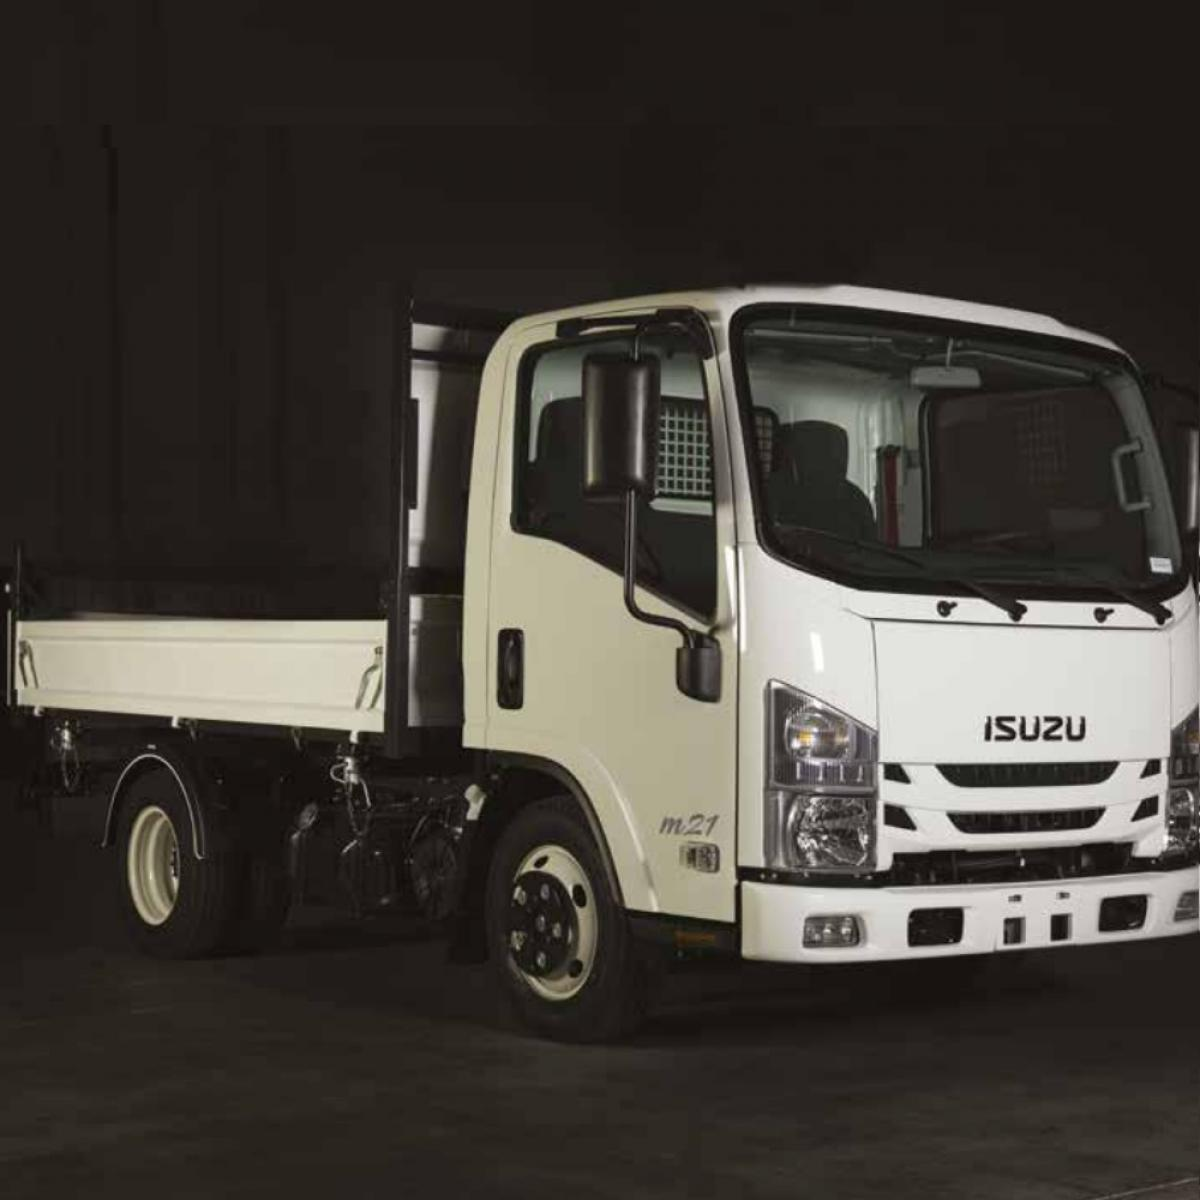 Isuzu M21 Single Tire Usabilita